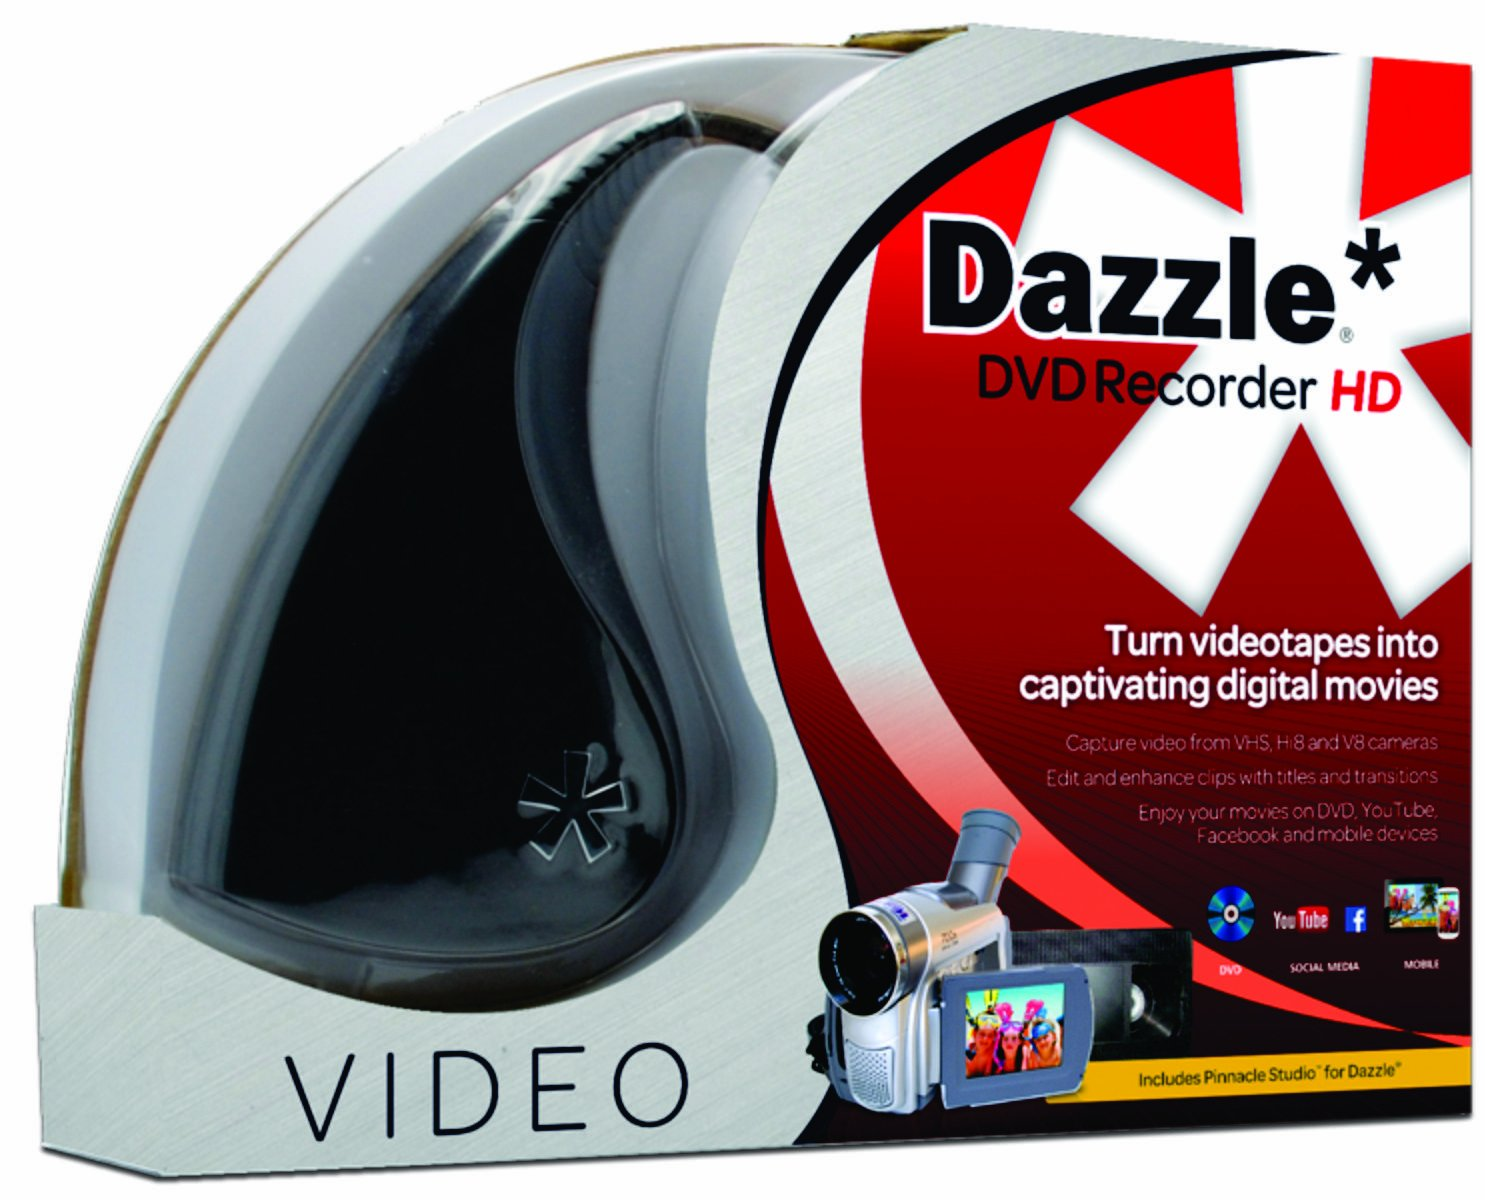 dazzle dvd recorder hd vhs to dvd converter 798631825511. Black Bedroom Furniture Sets. Home Design Ideas